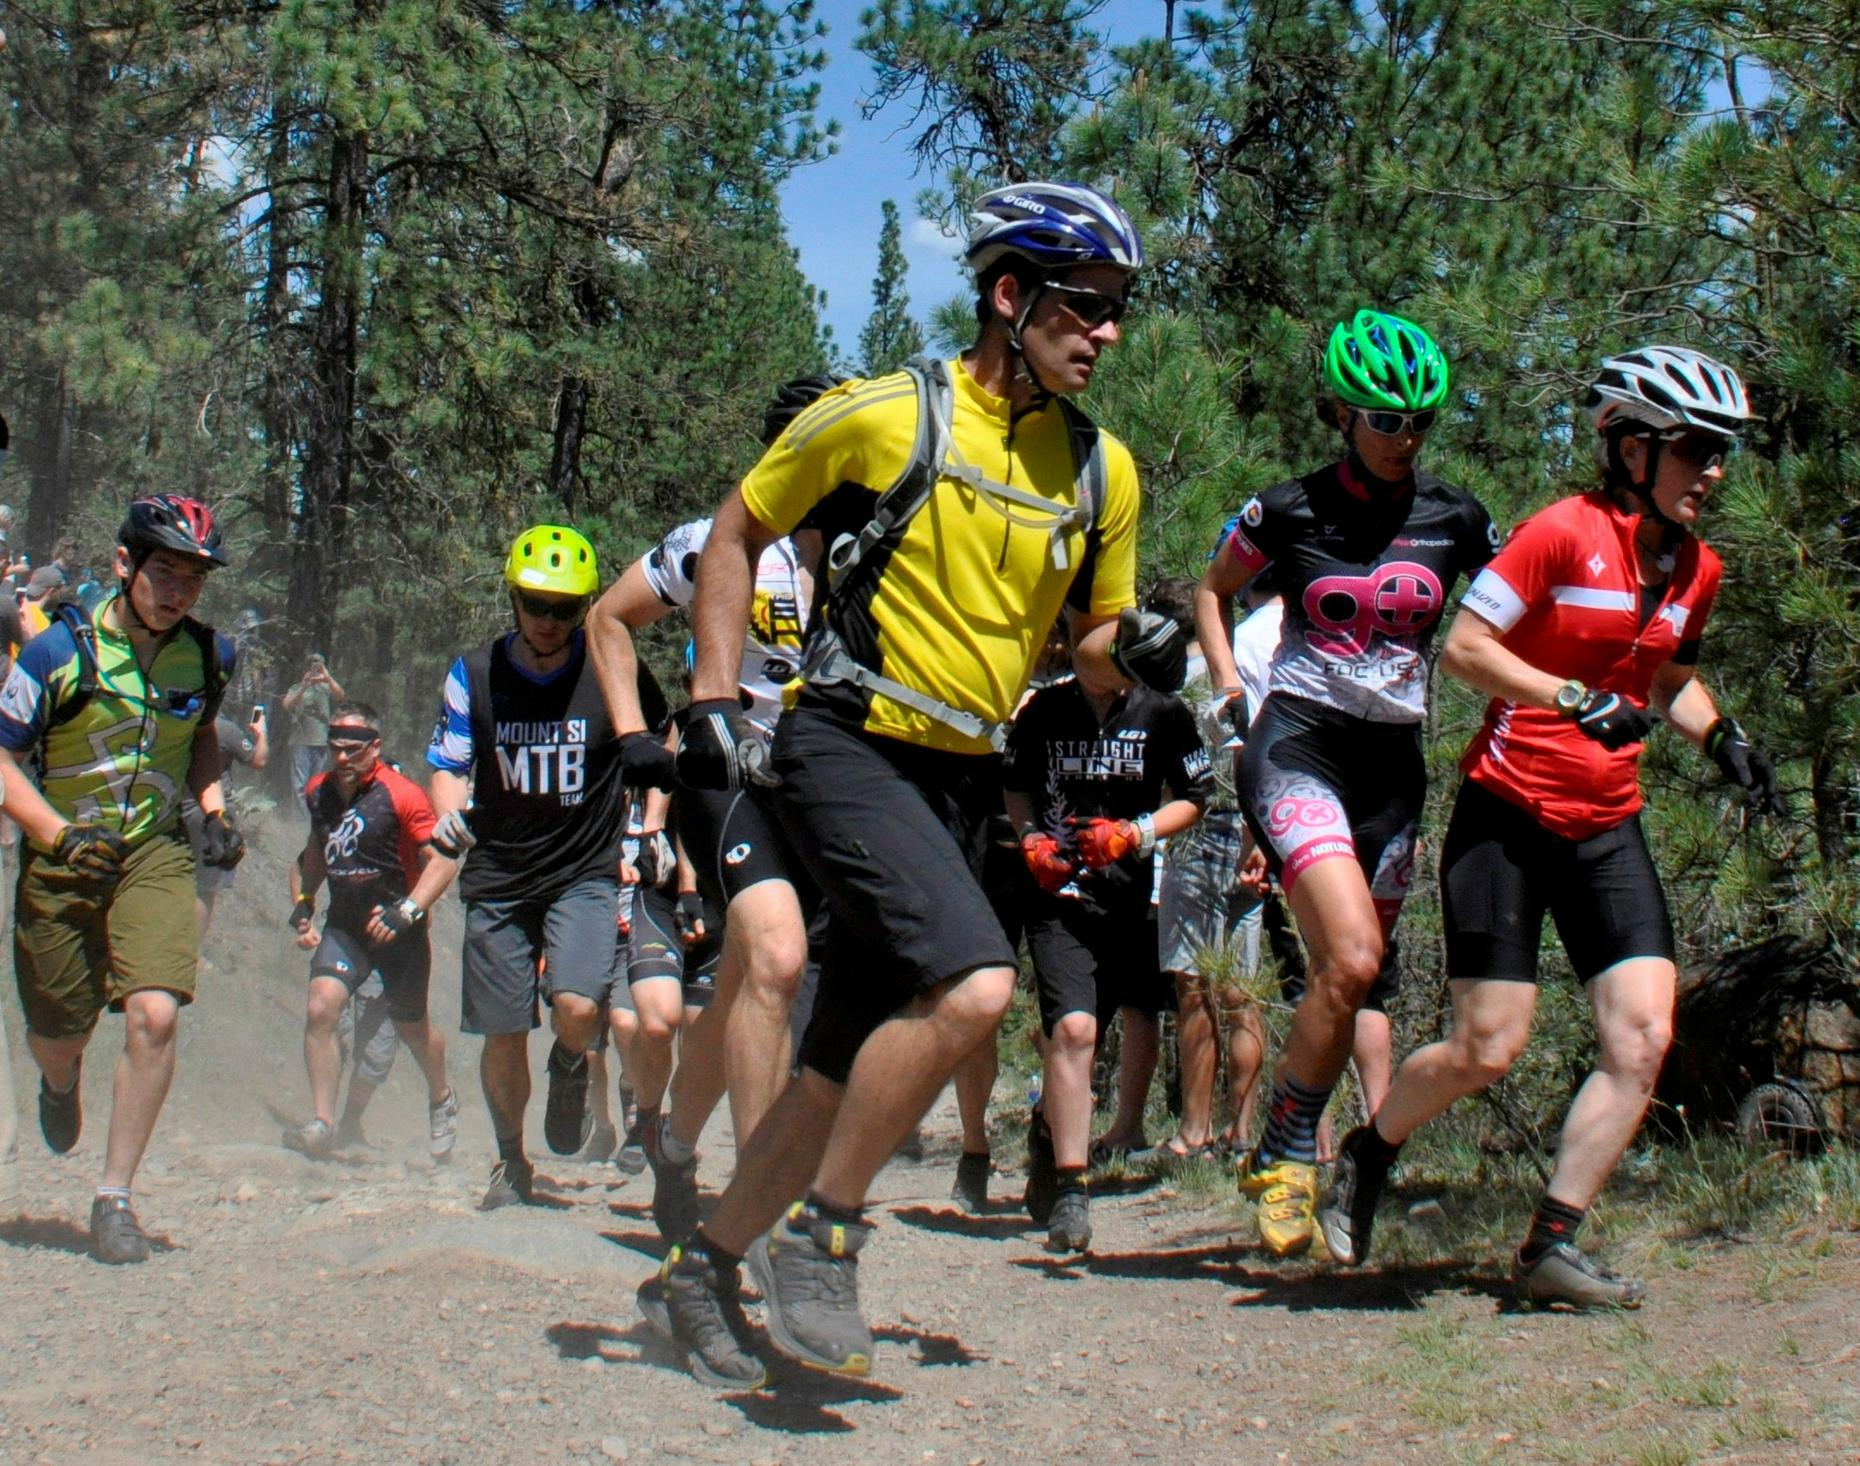 Competitors sprint during a running lap to spread out the field before mounting their bikes for the 24 Hours Round the Clock mountain bike race on May 23, 2015, at Riverside State Park. (Photo Courtesy of Rich Landers)